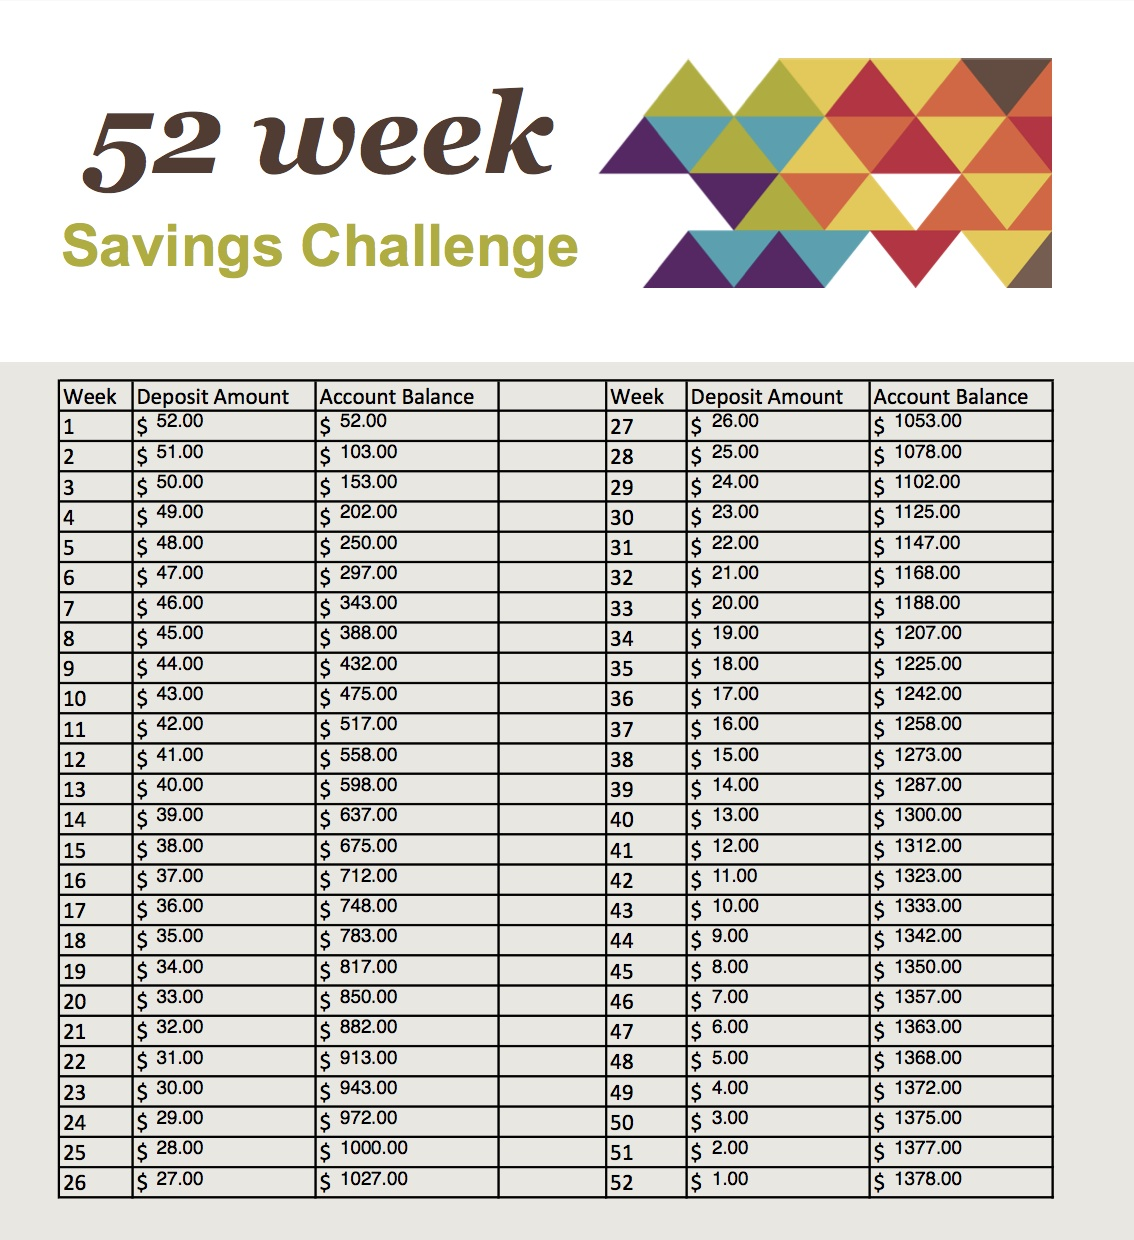 52 Week Savings Challenge Reverse Order